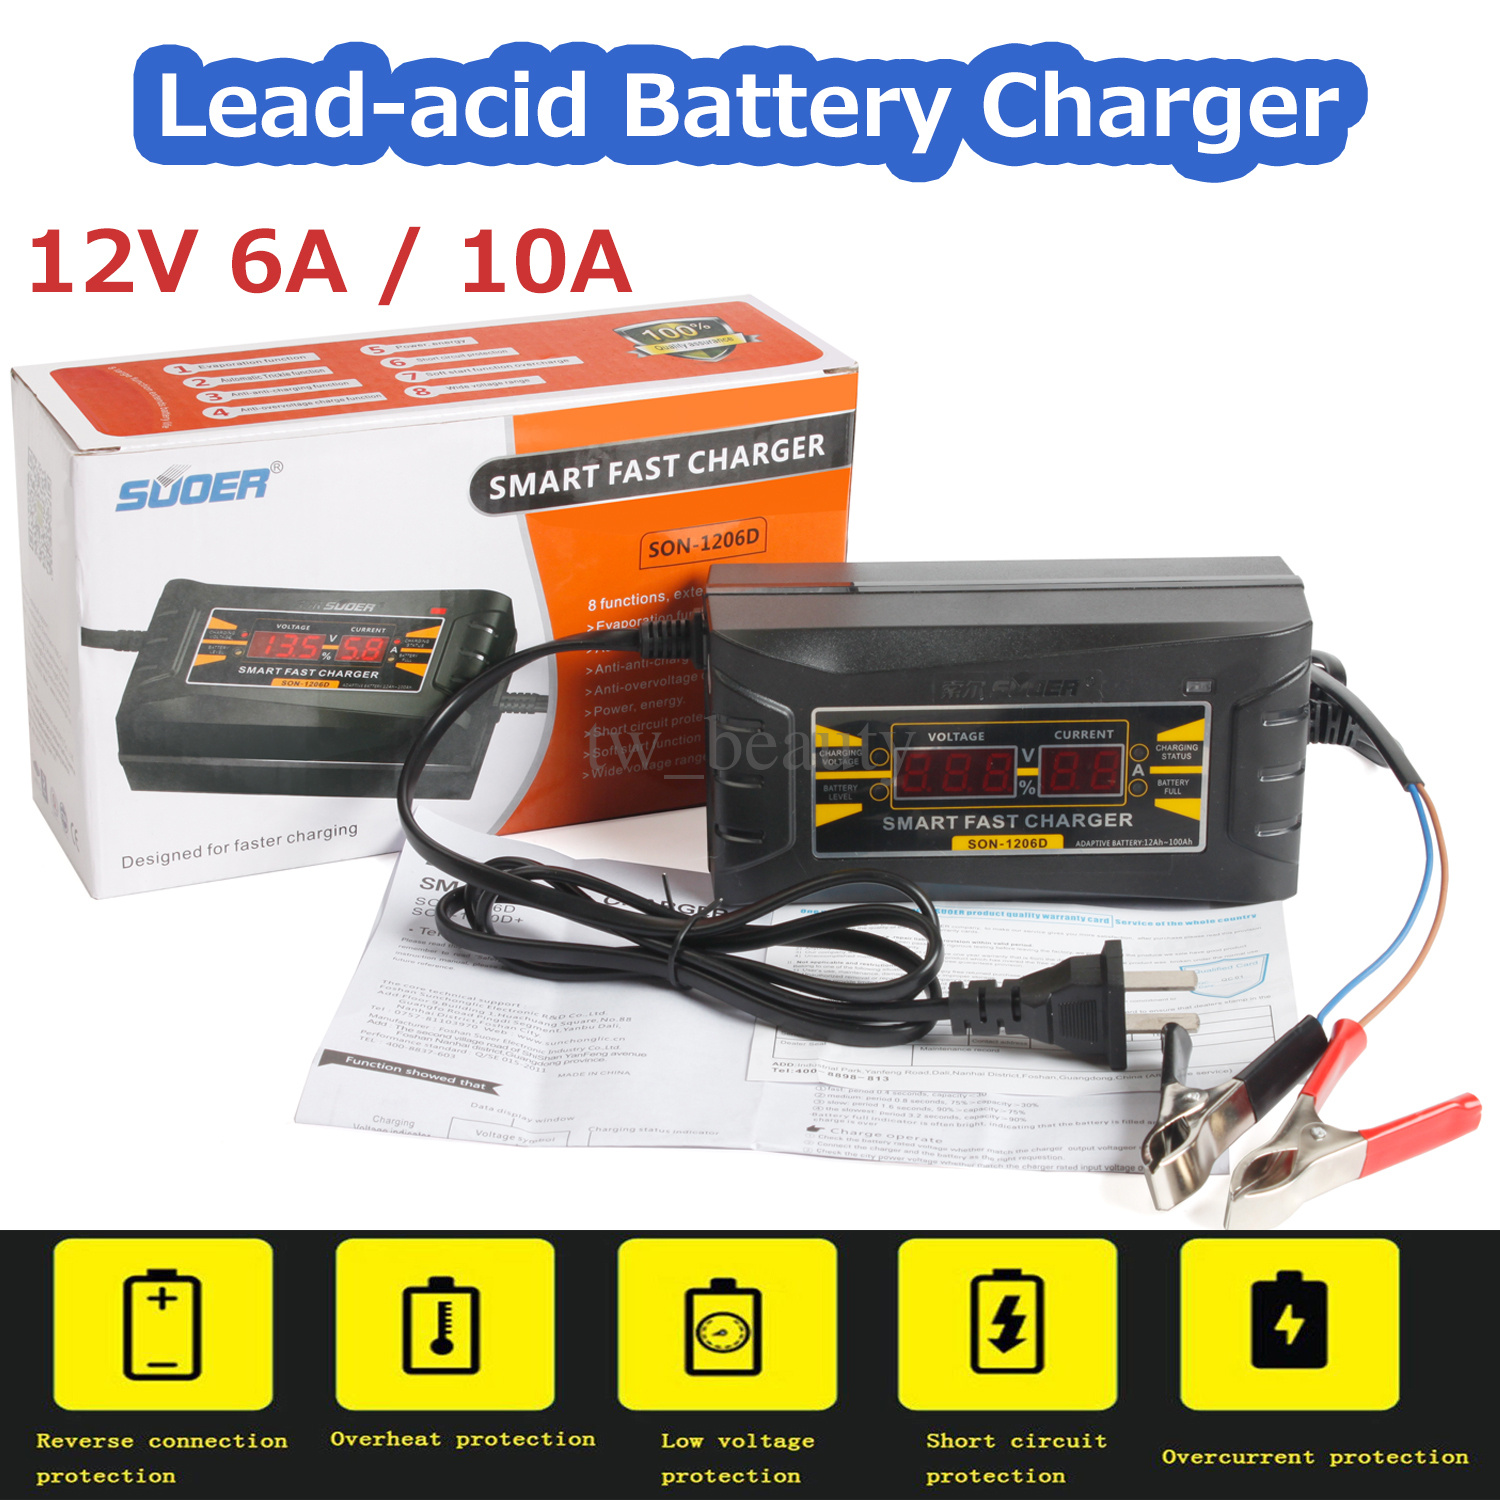 Details about 12V 6A10A Smart Fast Lead Acid Battery Charger For Car Motorcycle LCD 110V 240V